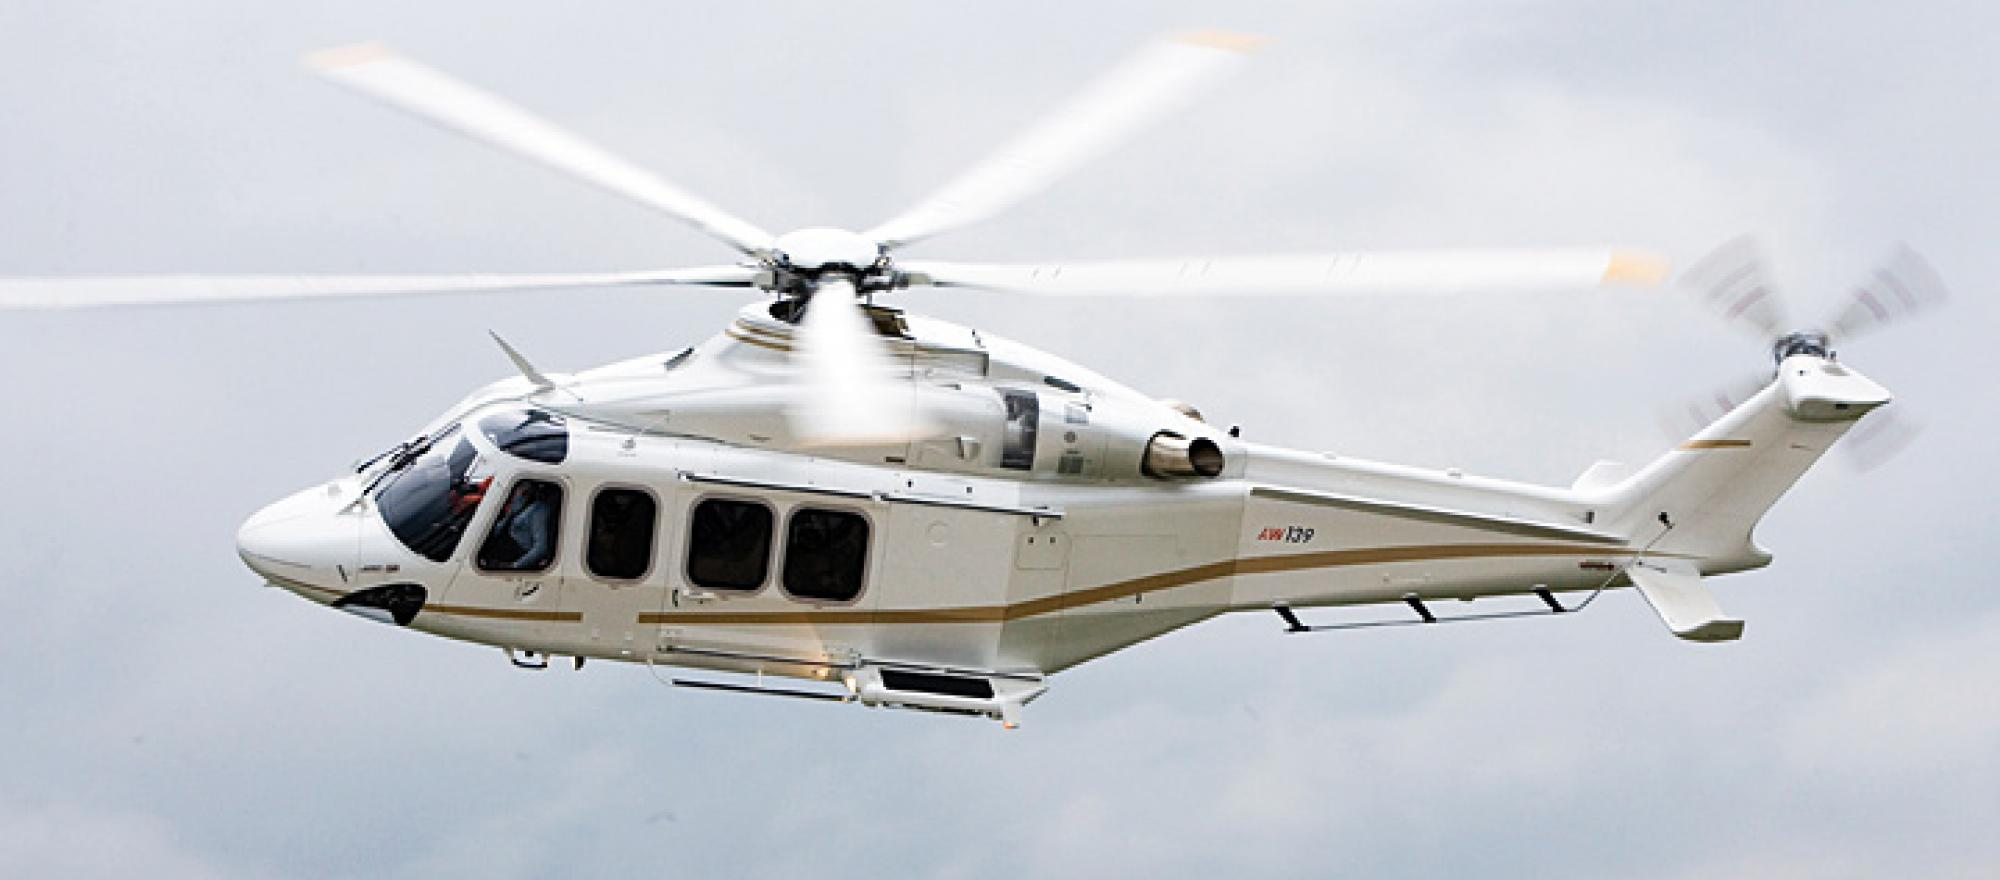 Most of the used AW139s on the market aren't in executive livery, so you may